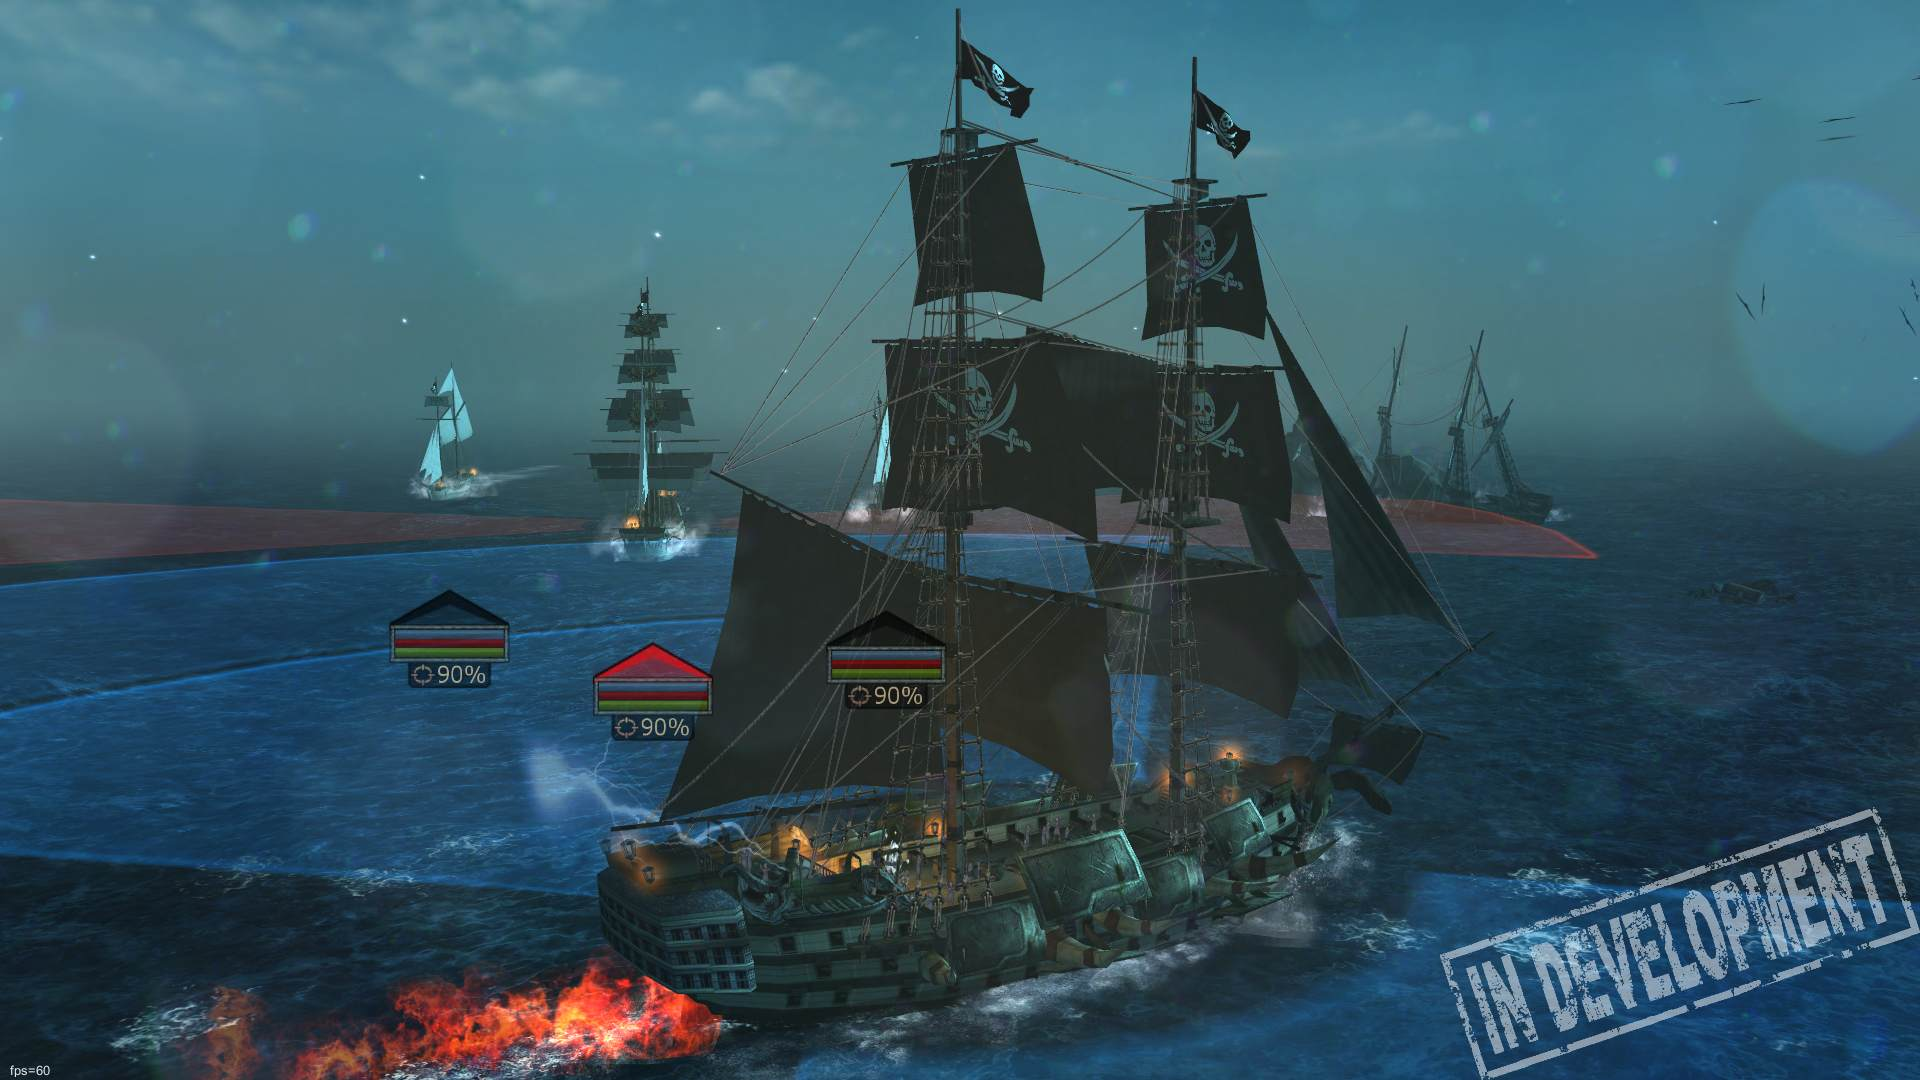 Tempest is an upcoming pirate-themed F2P RPG with legendary sea creatures, warship battles